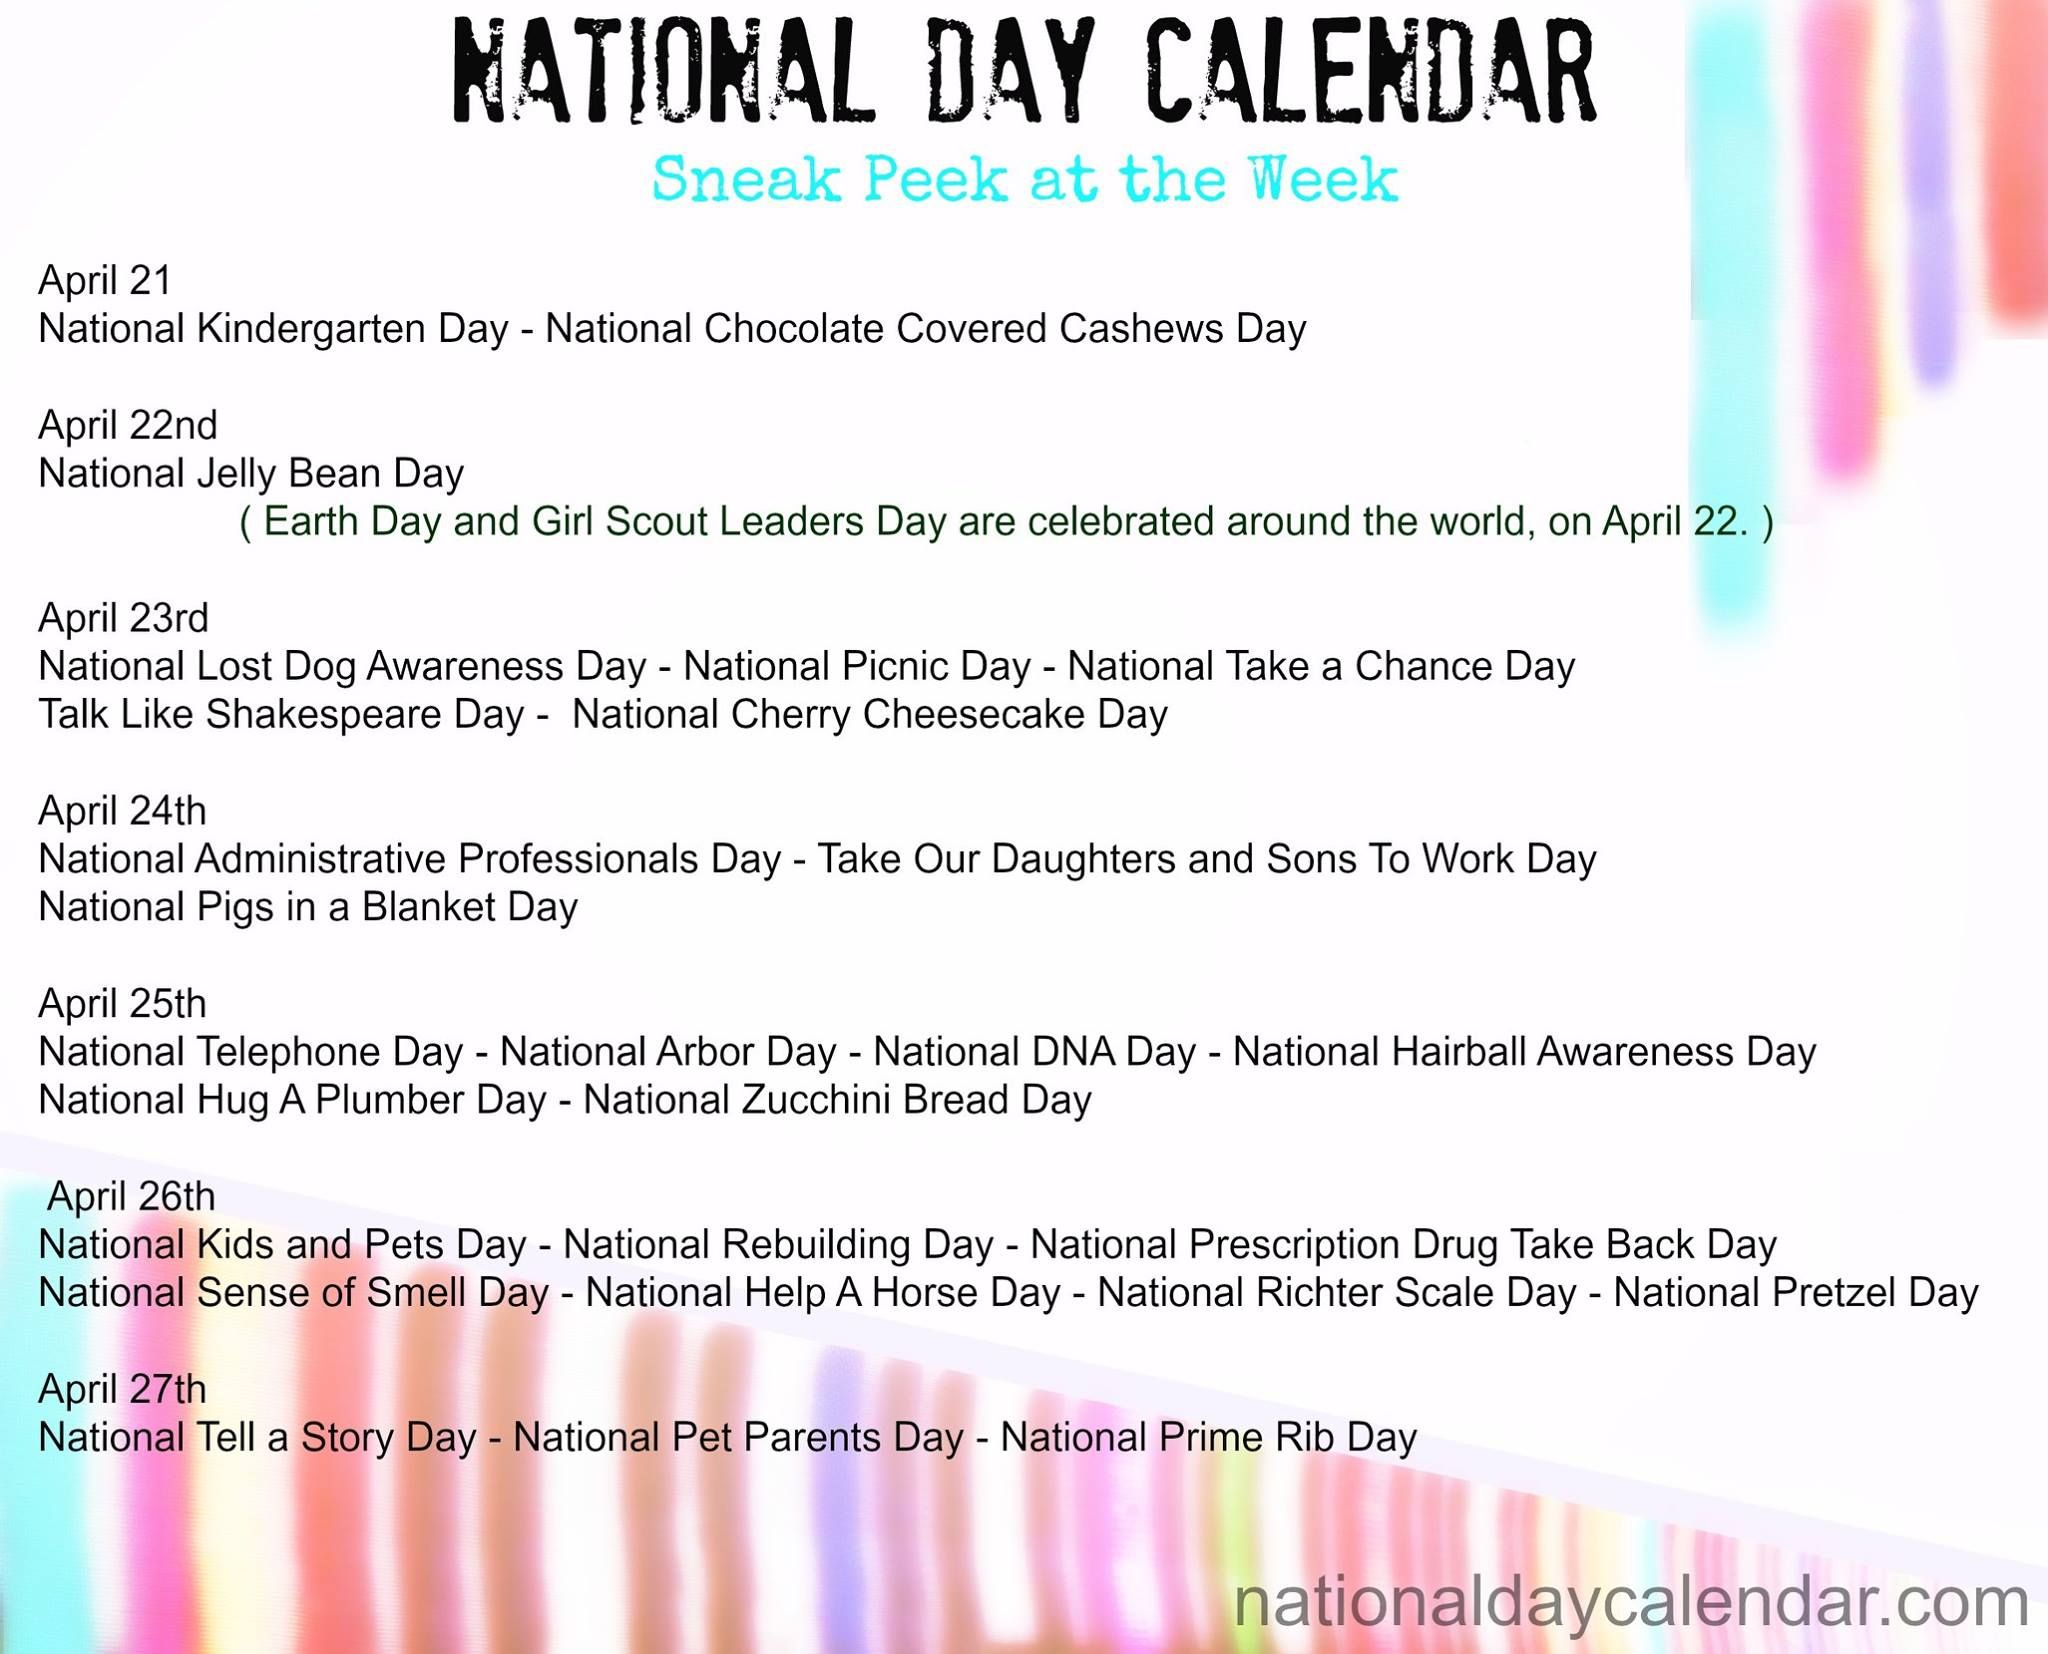 National Day Calendar (With Images) | National Day